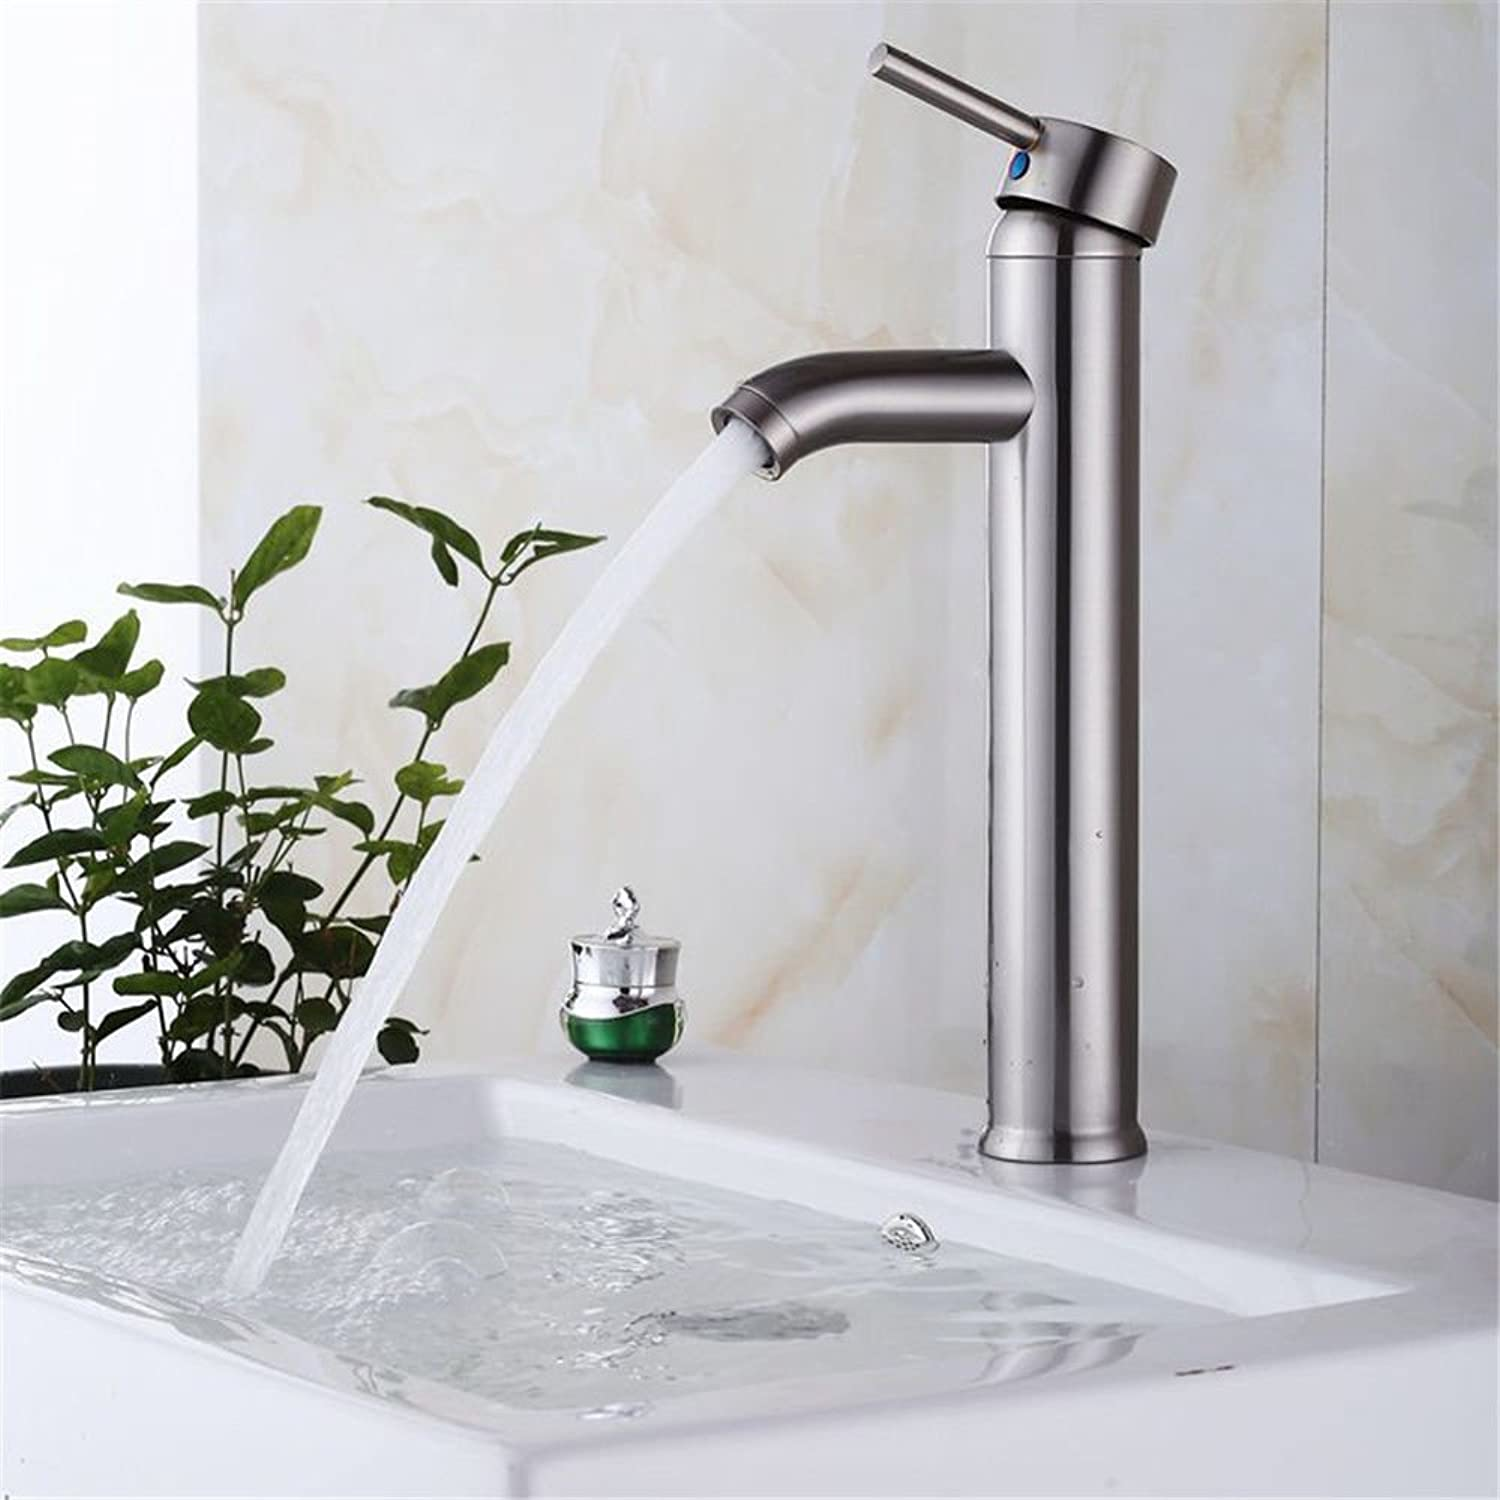 QIMEIM Basin Mixer Tap Bathroom Sink Tap Mixer Wash Sink Faucet Brushed Brass Hot and Cold Water Single Lever Bathroom Mixer Taps